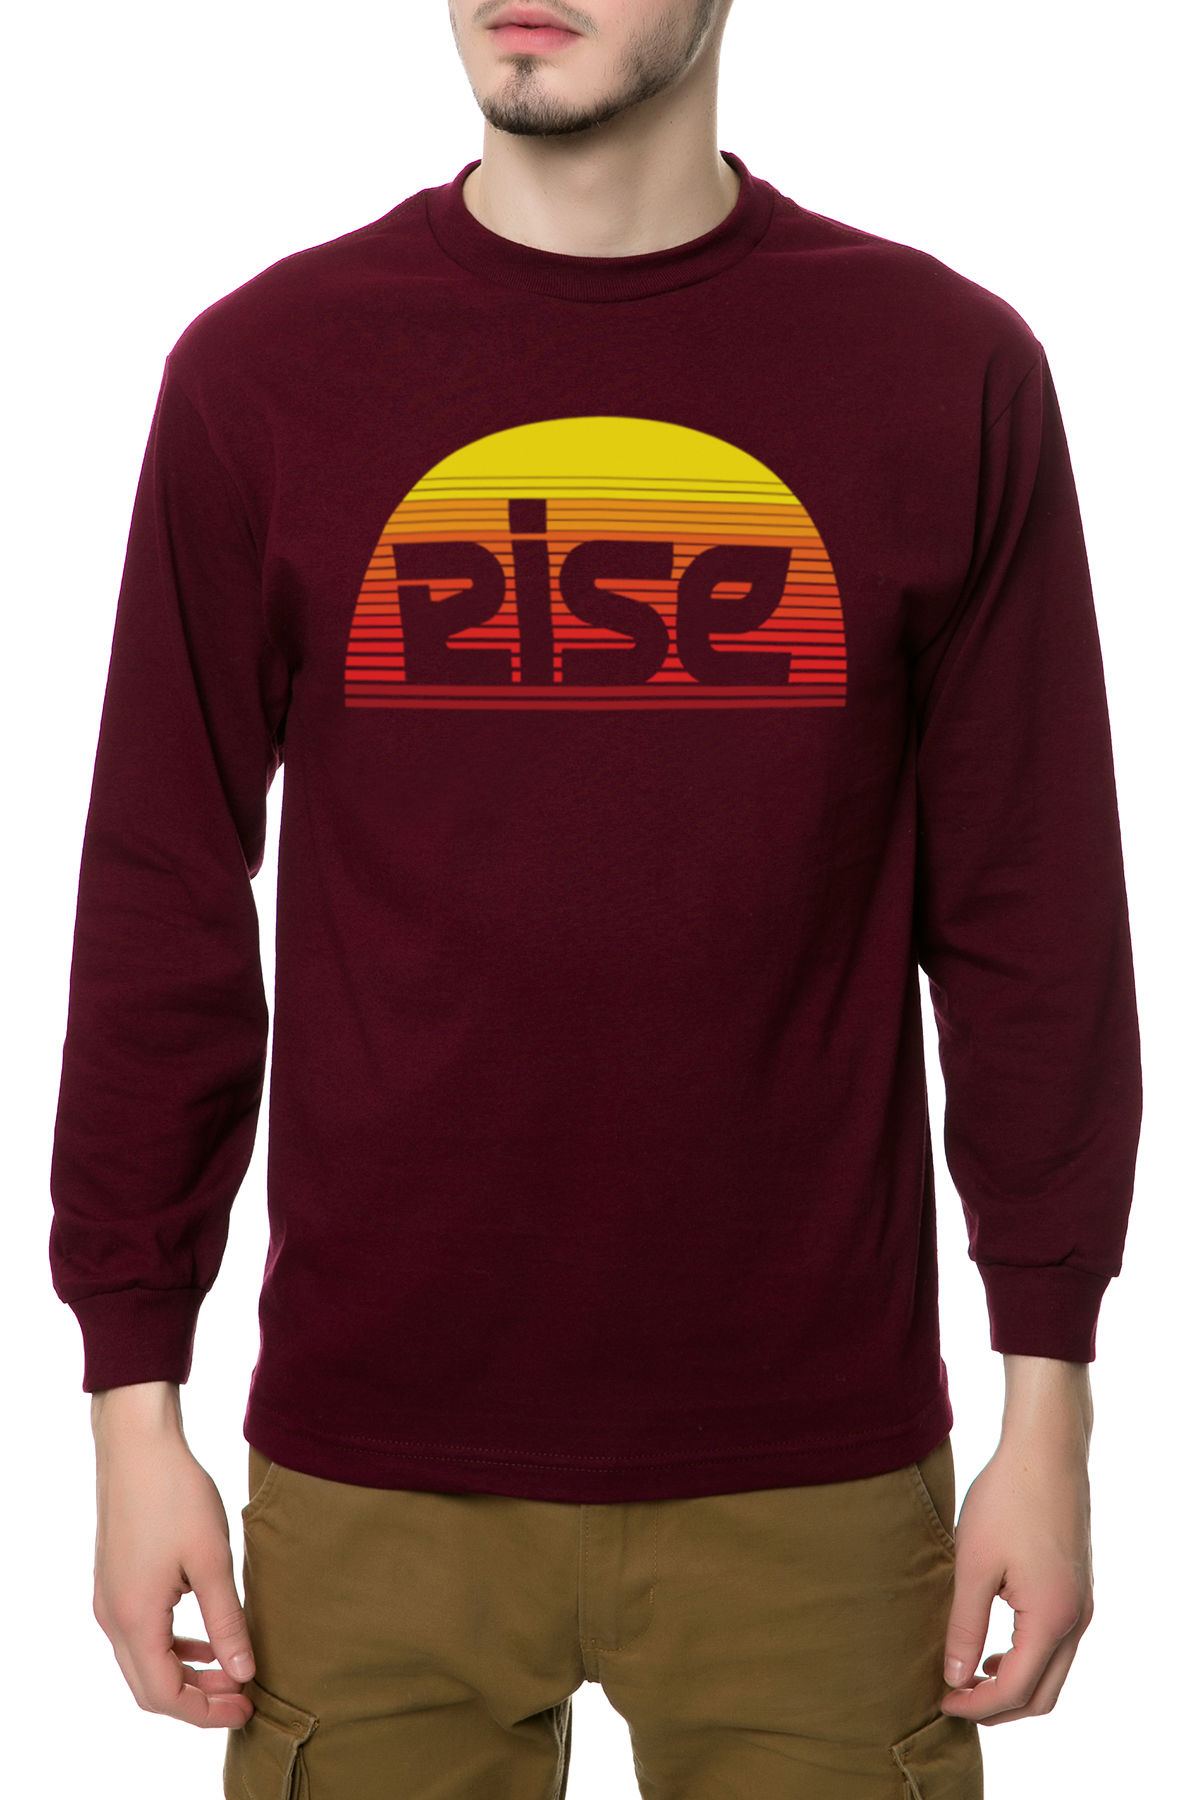 Image of The Sunrise Long Sleeve Tee in Burgundy